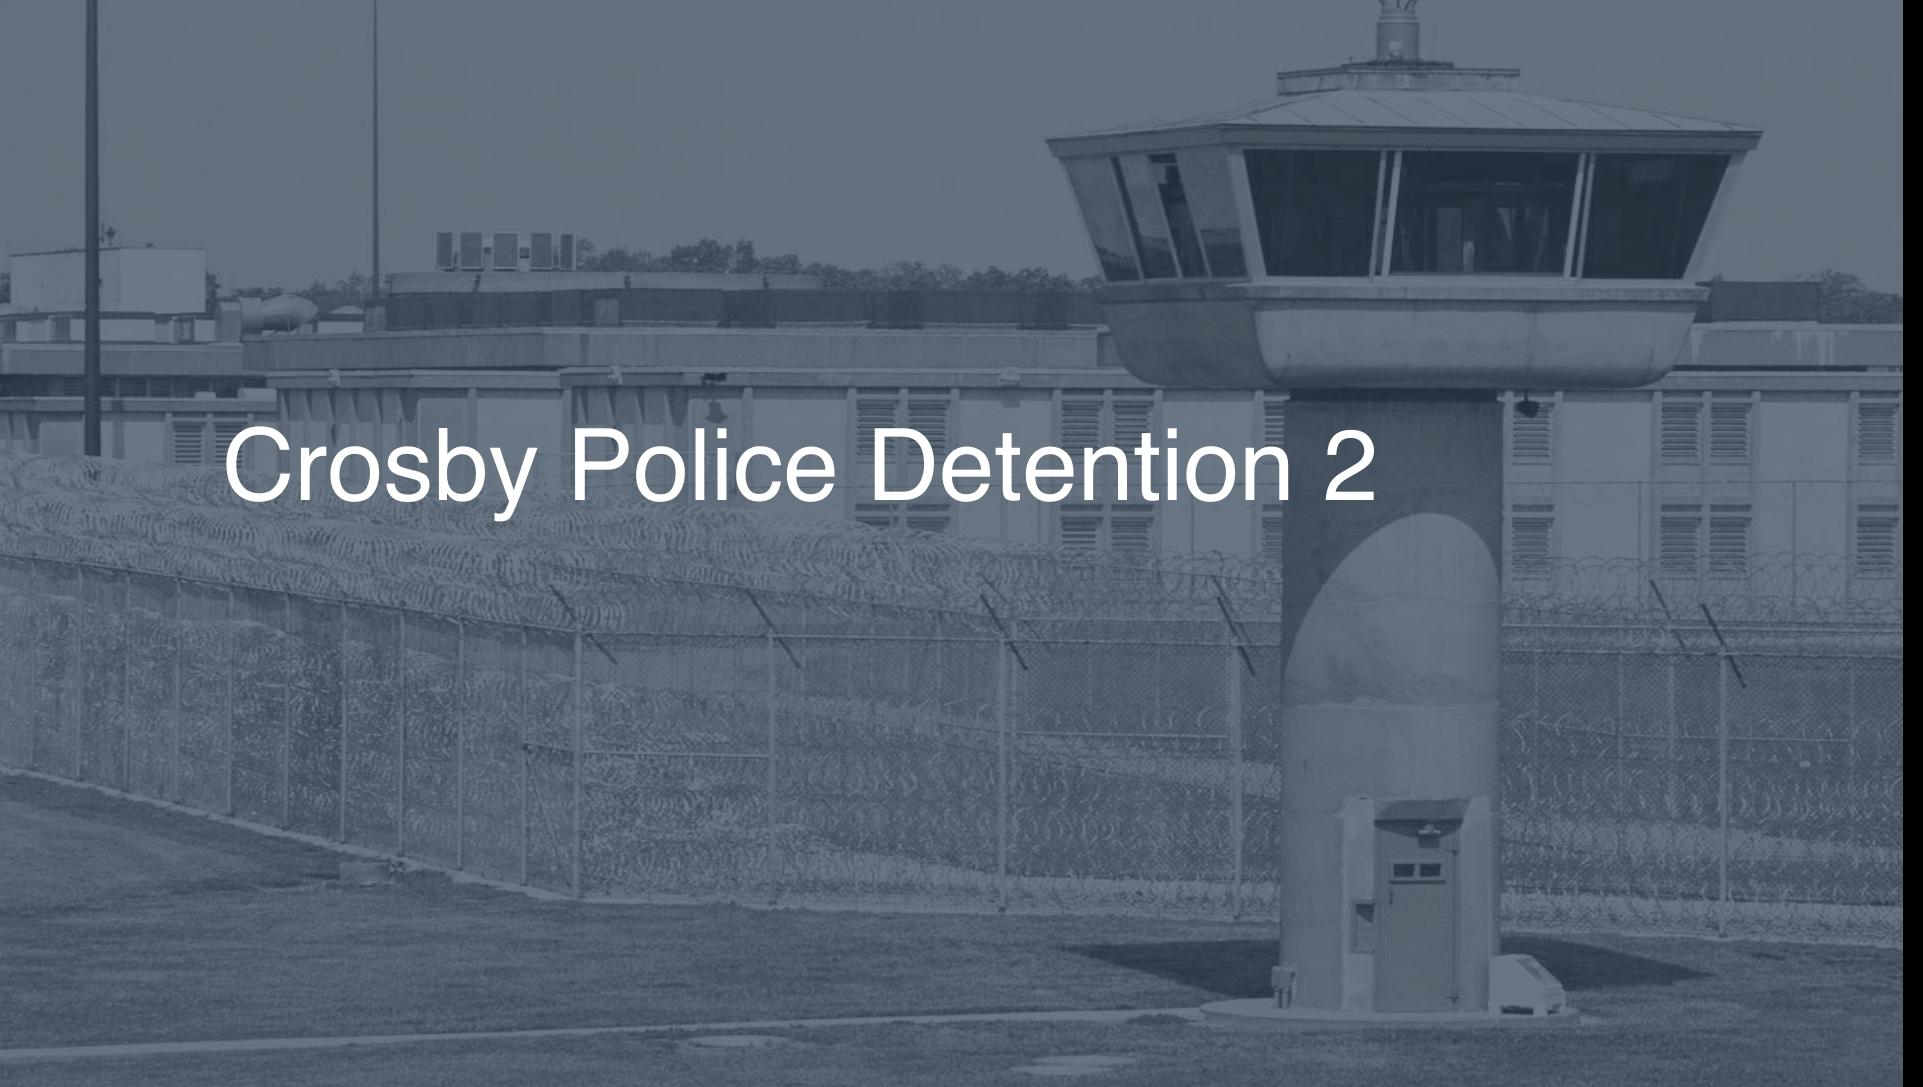 Crosby Police Detention correctional facility picture